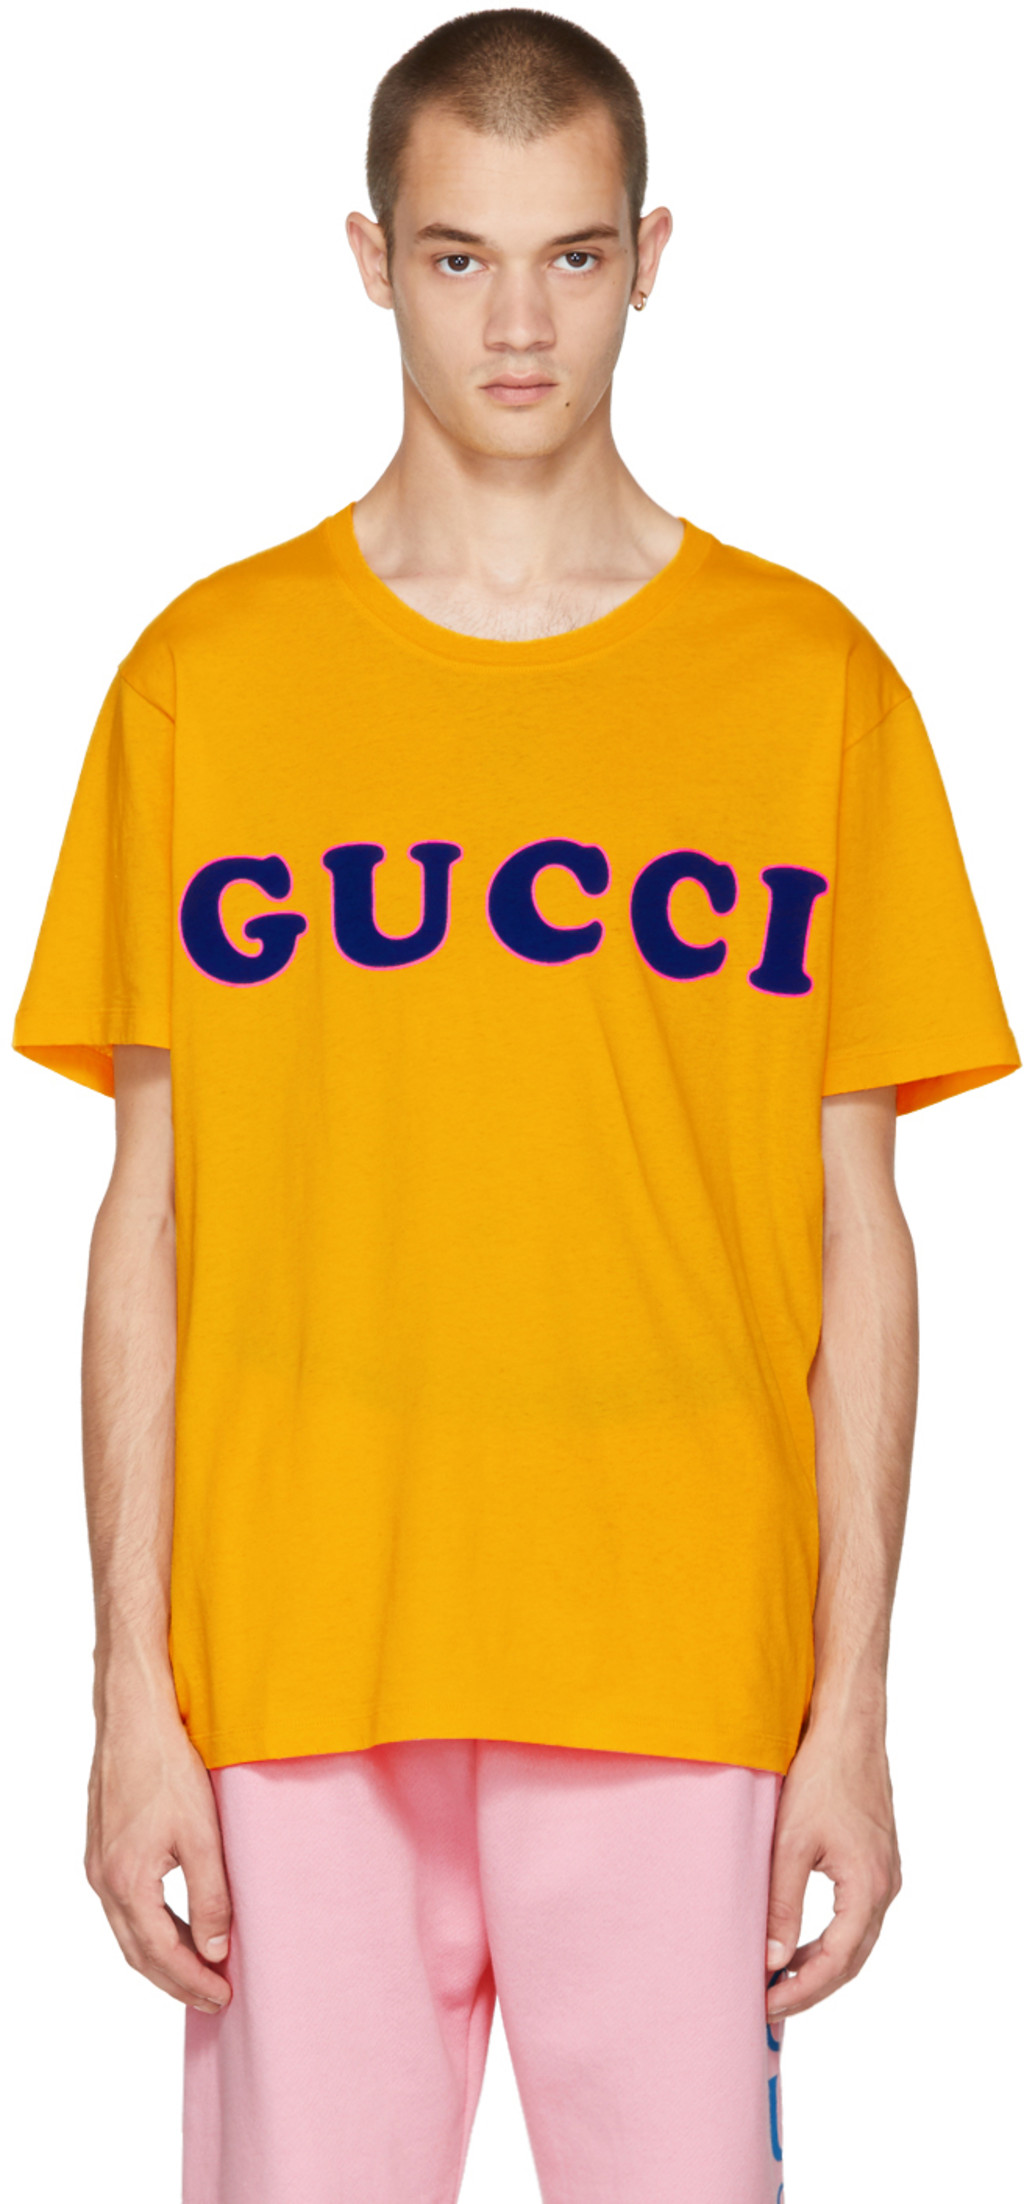 7625c26bdd1 Gucci t-shirts for Men